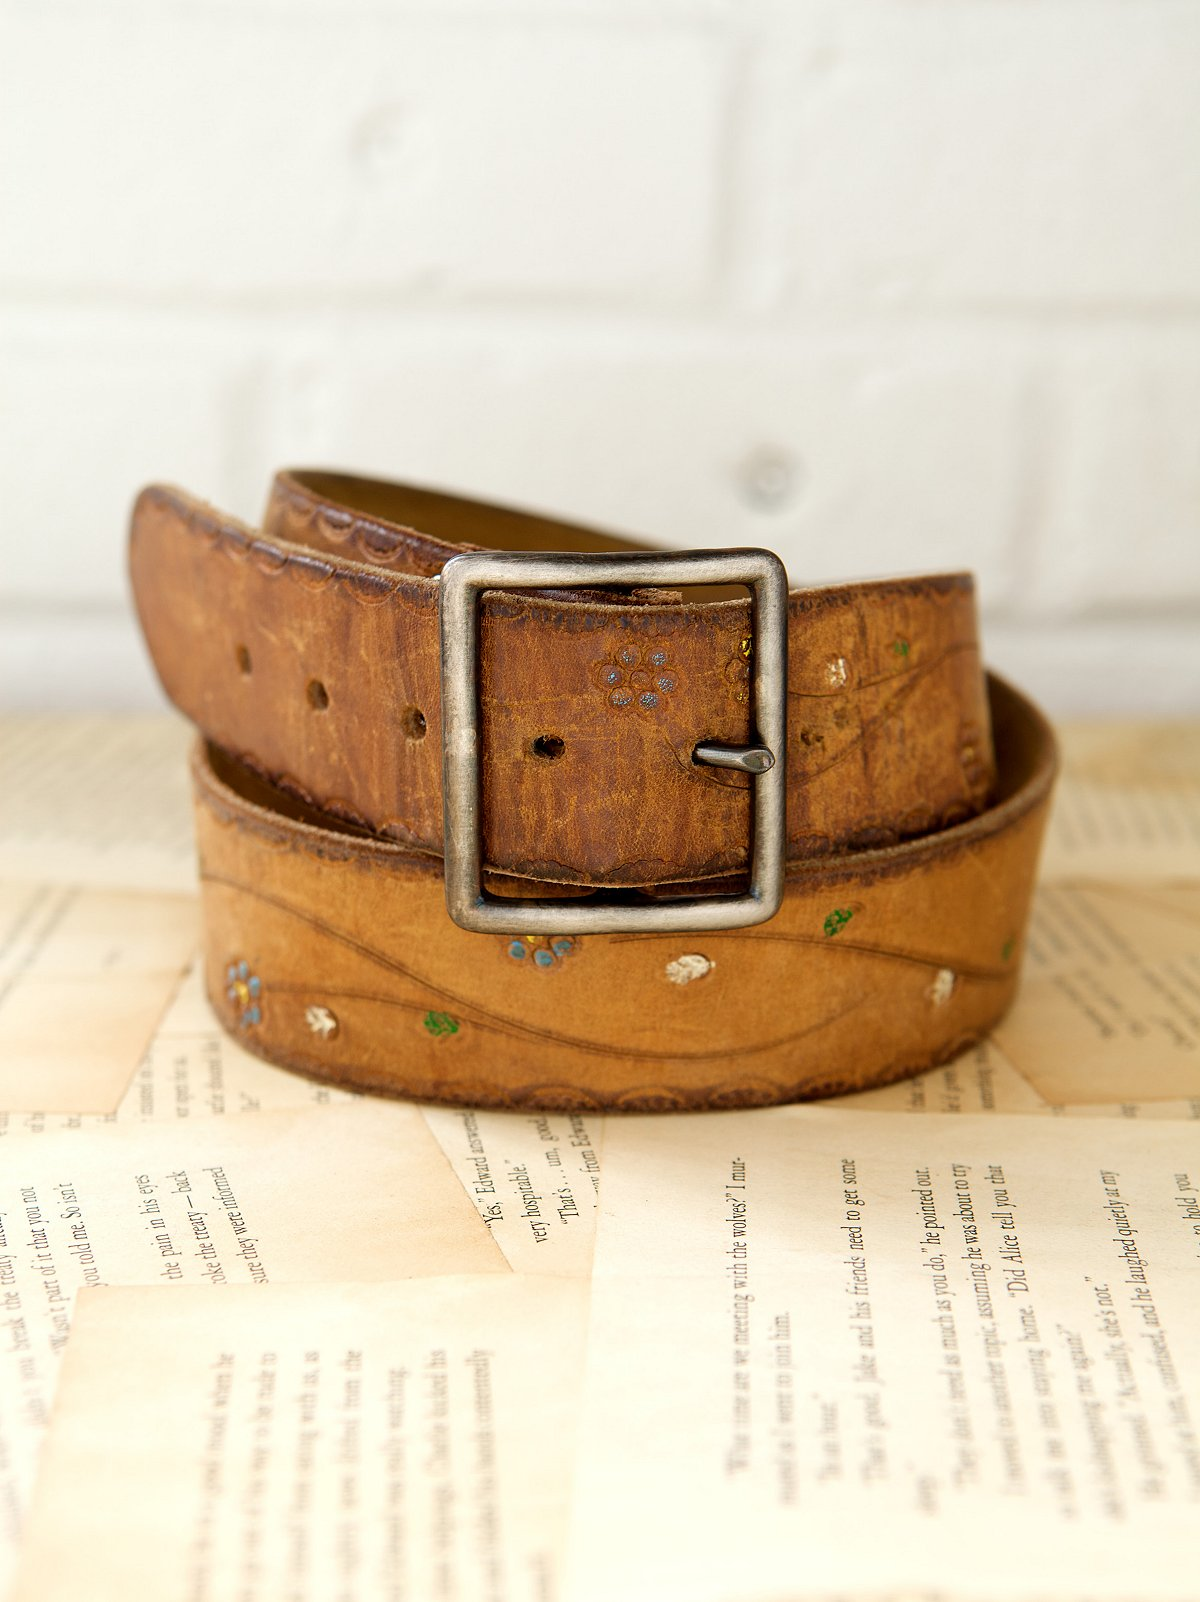 Vintage 1970s Kozmic Blues Belt